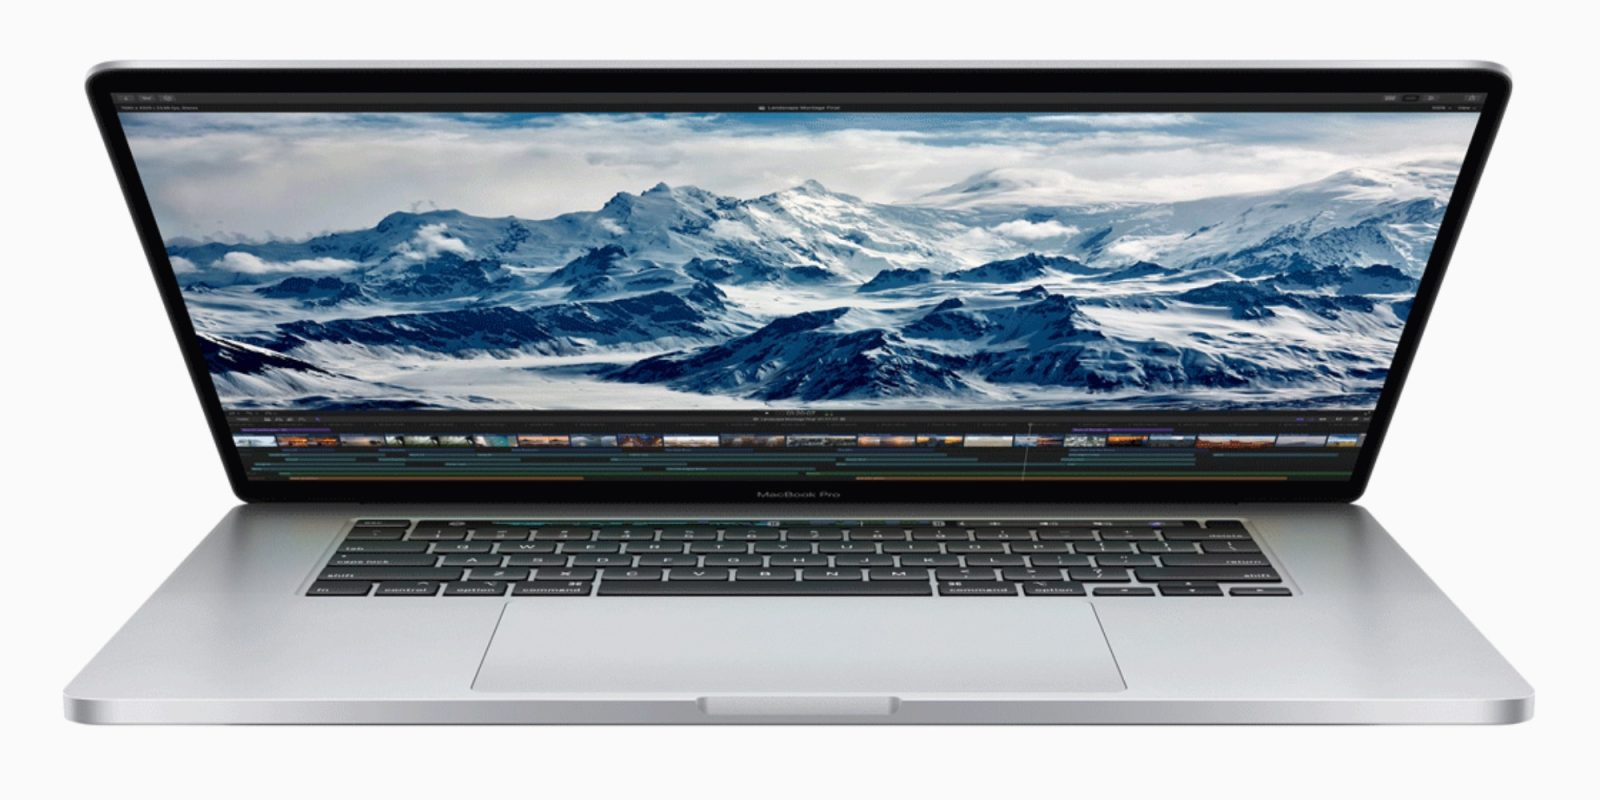 The latest MacBook Pro has a different keyboard, so is it safe to buy an Apple laptop now?